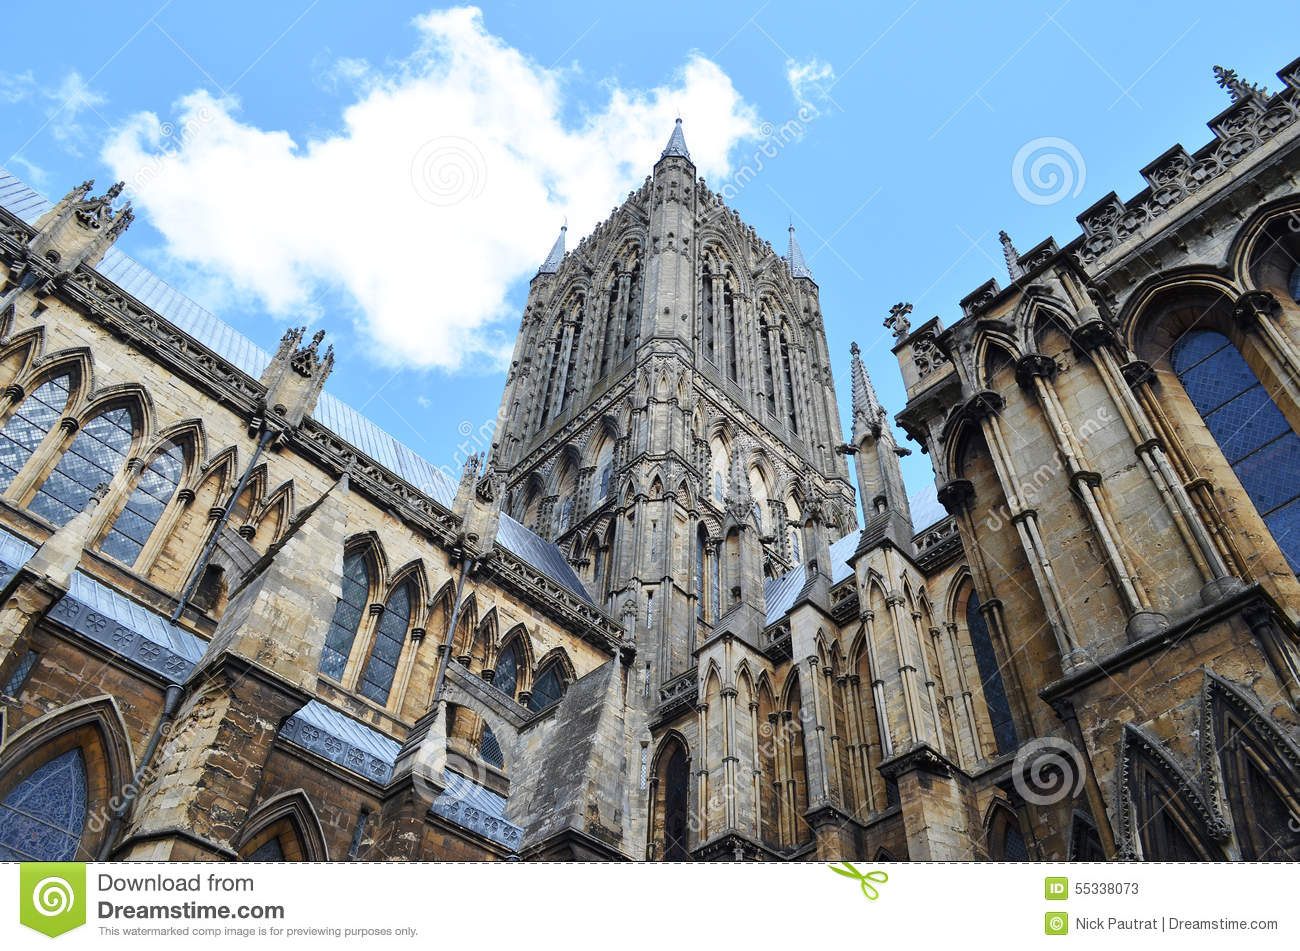 Spits in Lincoln Cathedral, Engeland